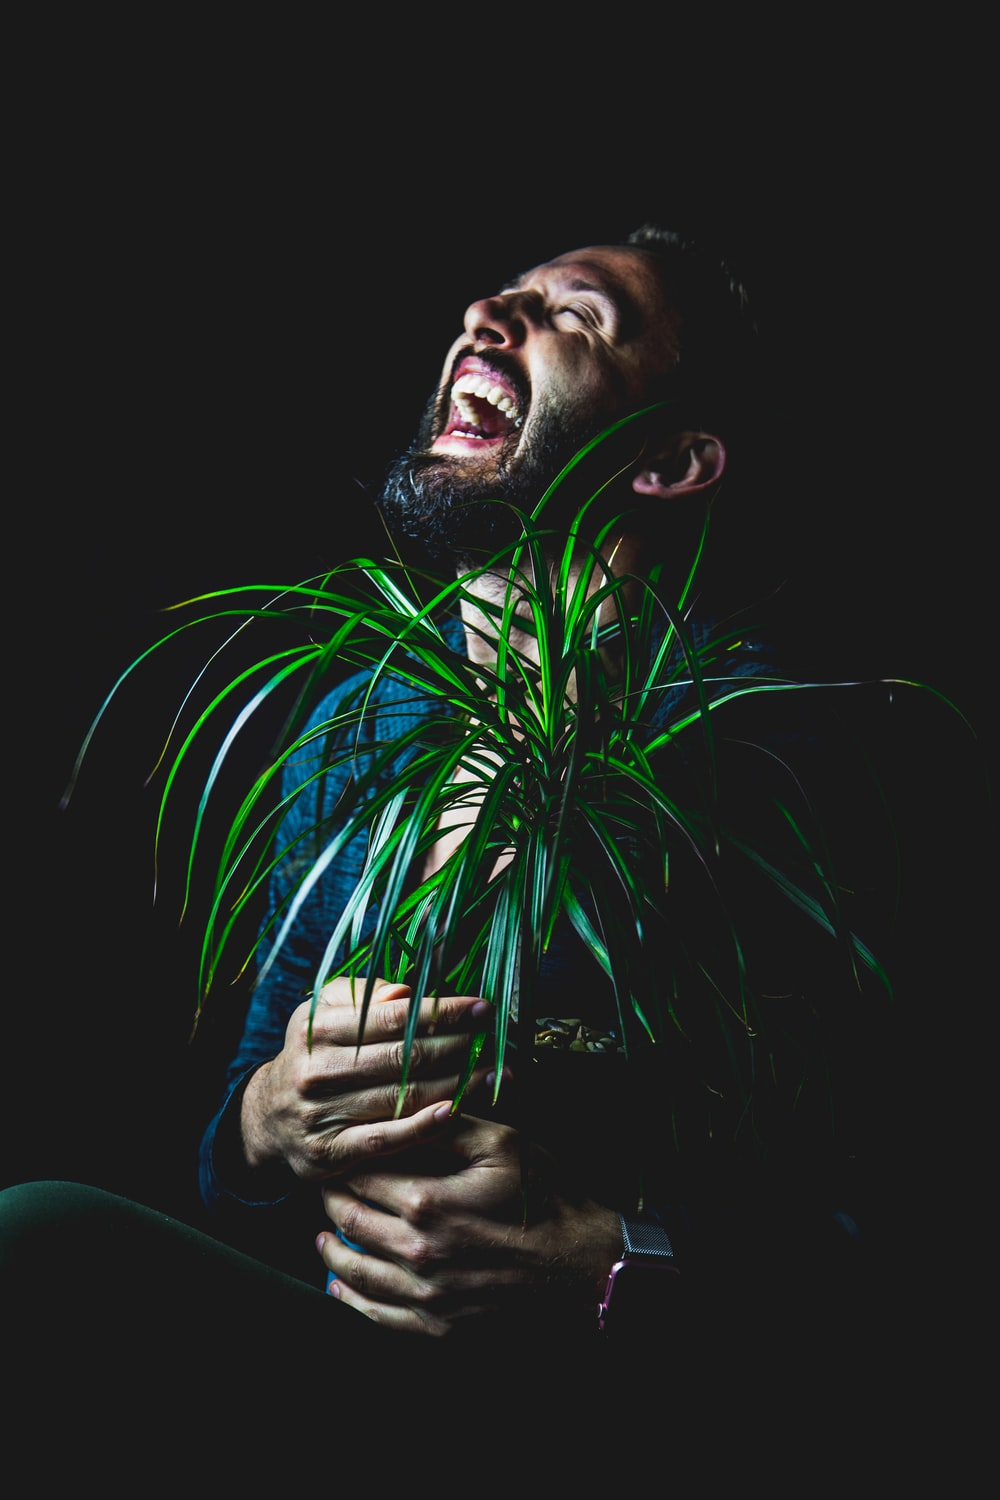 man holding green leafed plants